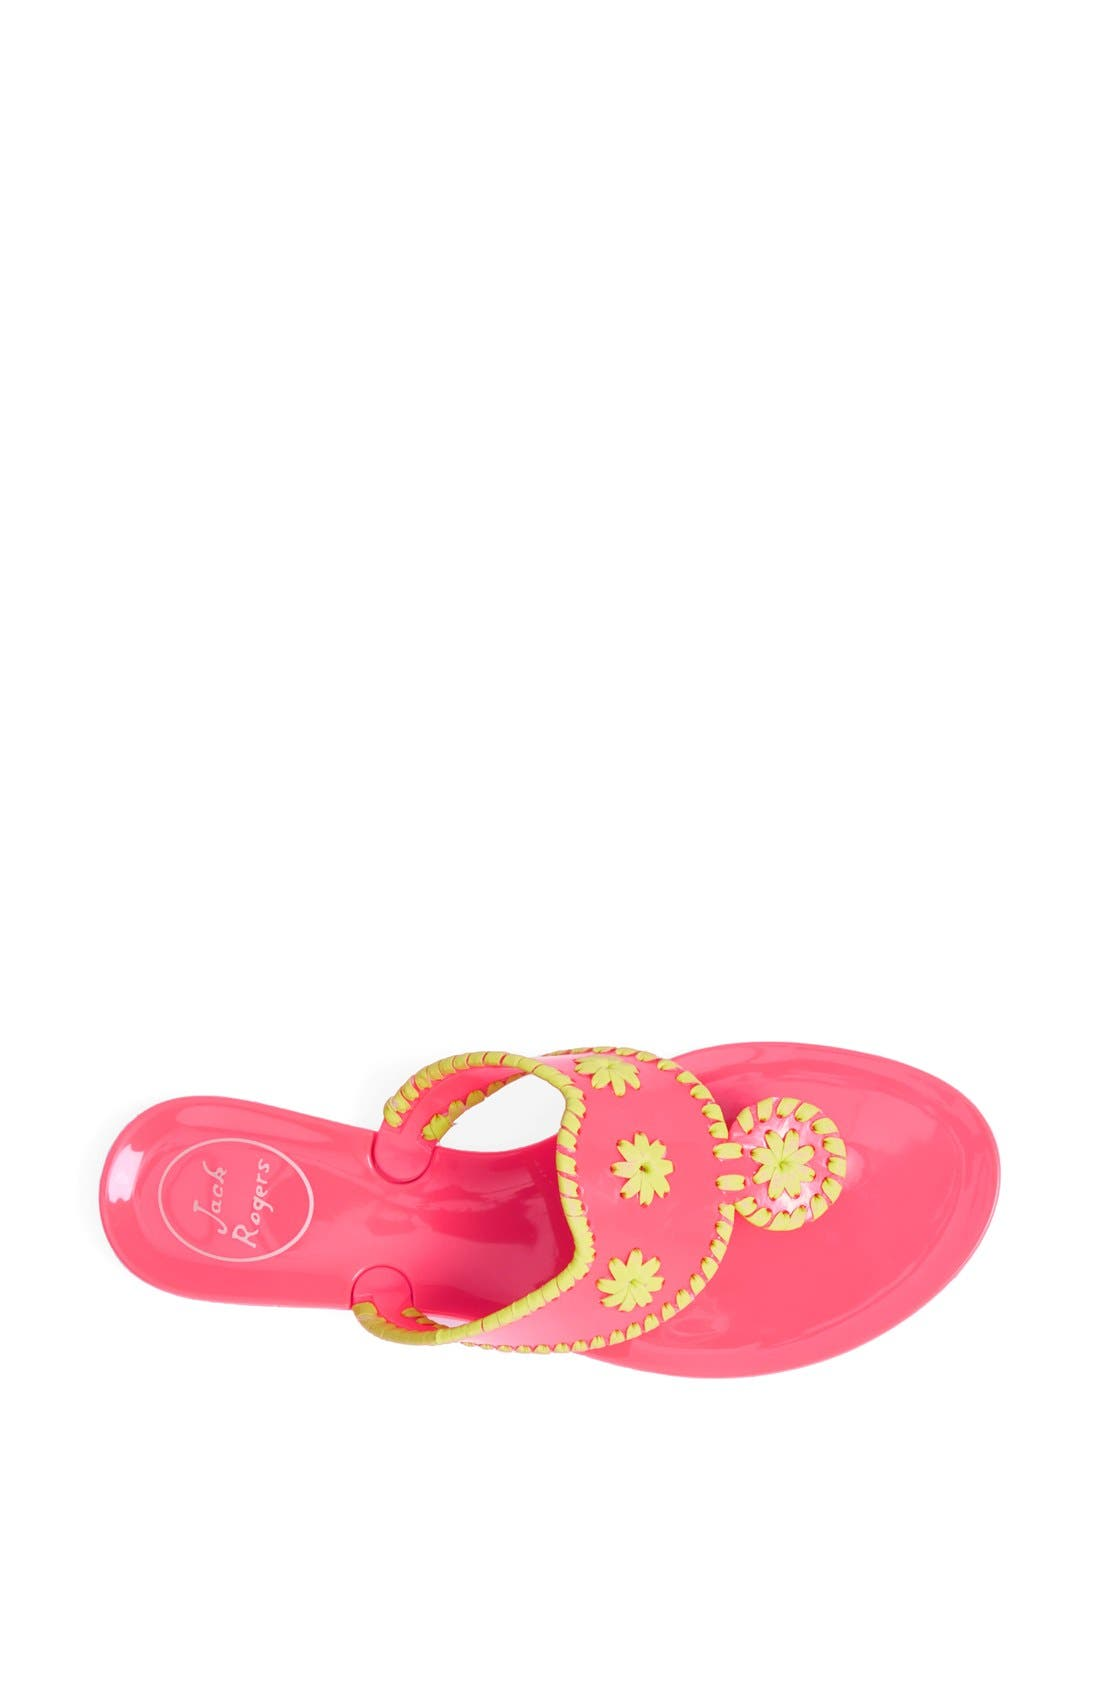 Alternate Image 3  - Jack Rogers 'Jr' Jelly Sandal